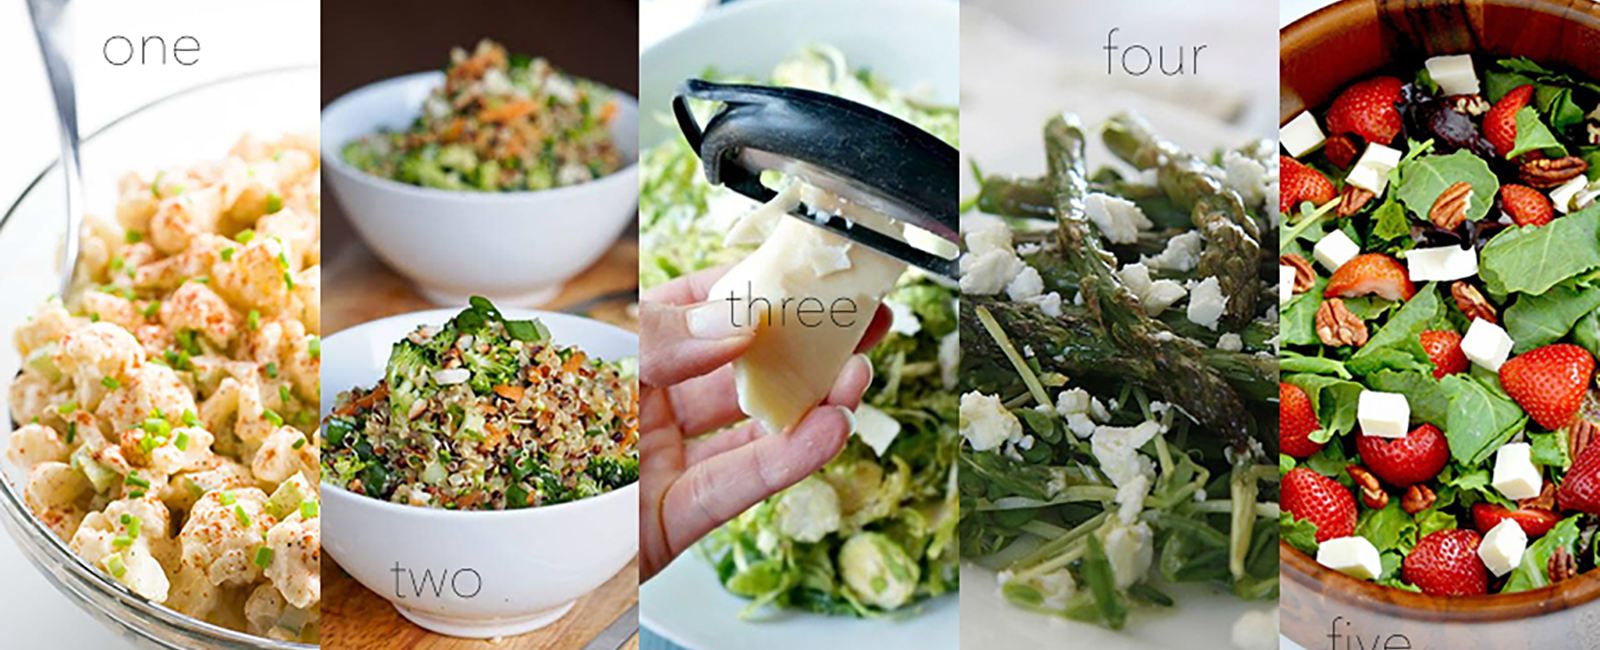 5 Delicious Salads for Your New Year's Resolution